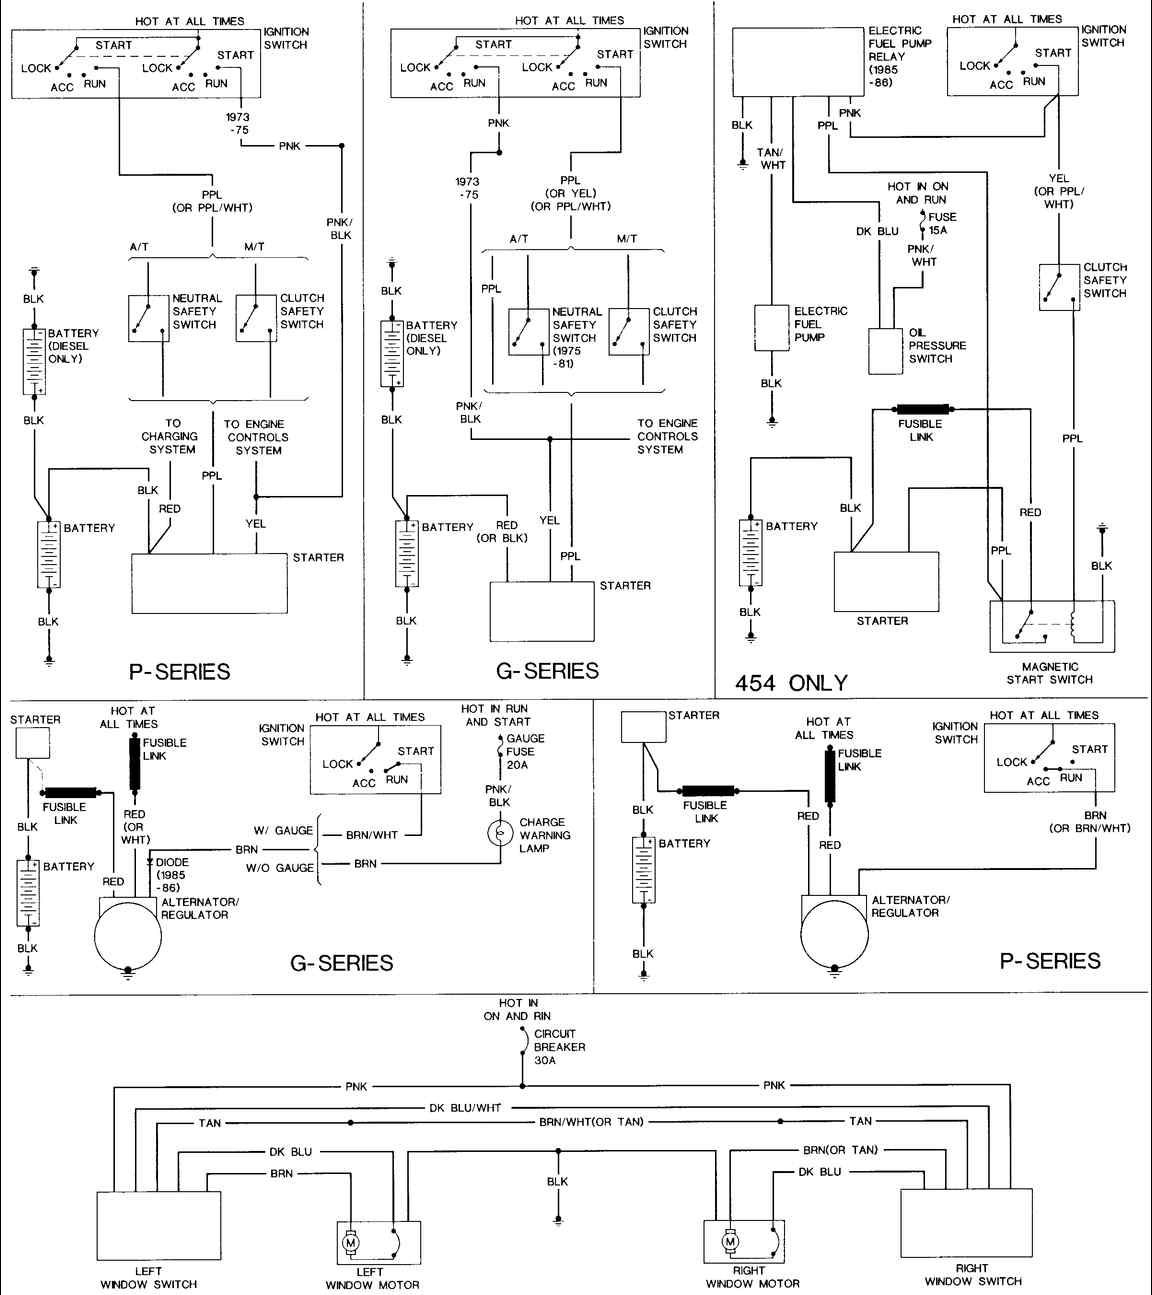 0c73623a181dc376dbb4777e2029d285 85 chevy truck wiring diagram 85 chevy van the steering column 1965 chevy c10 starter wiring diagram at edmiracle.co